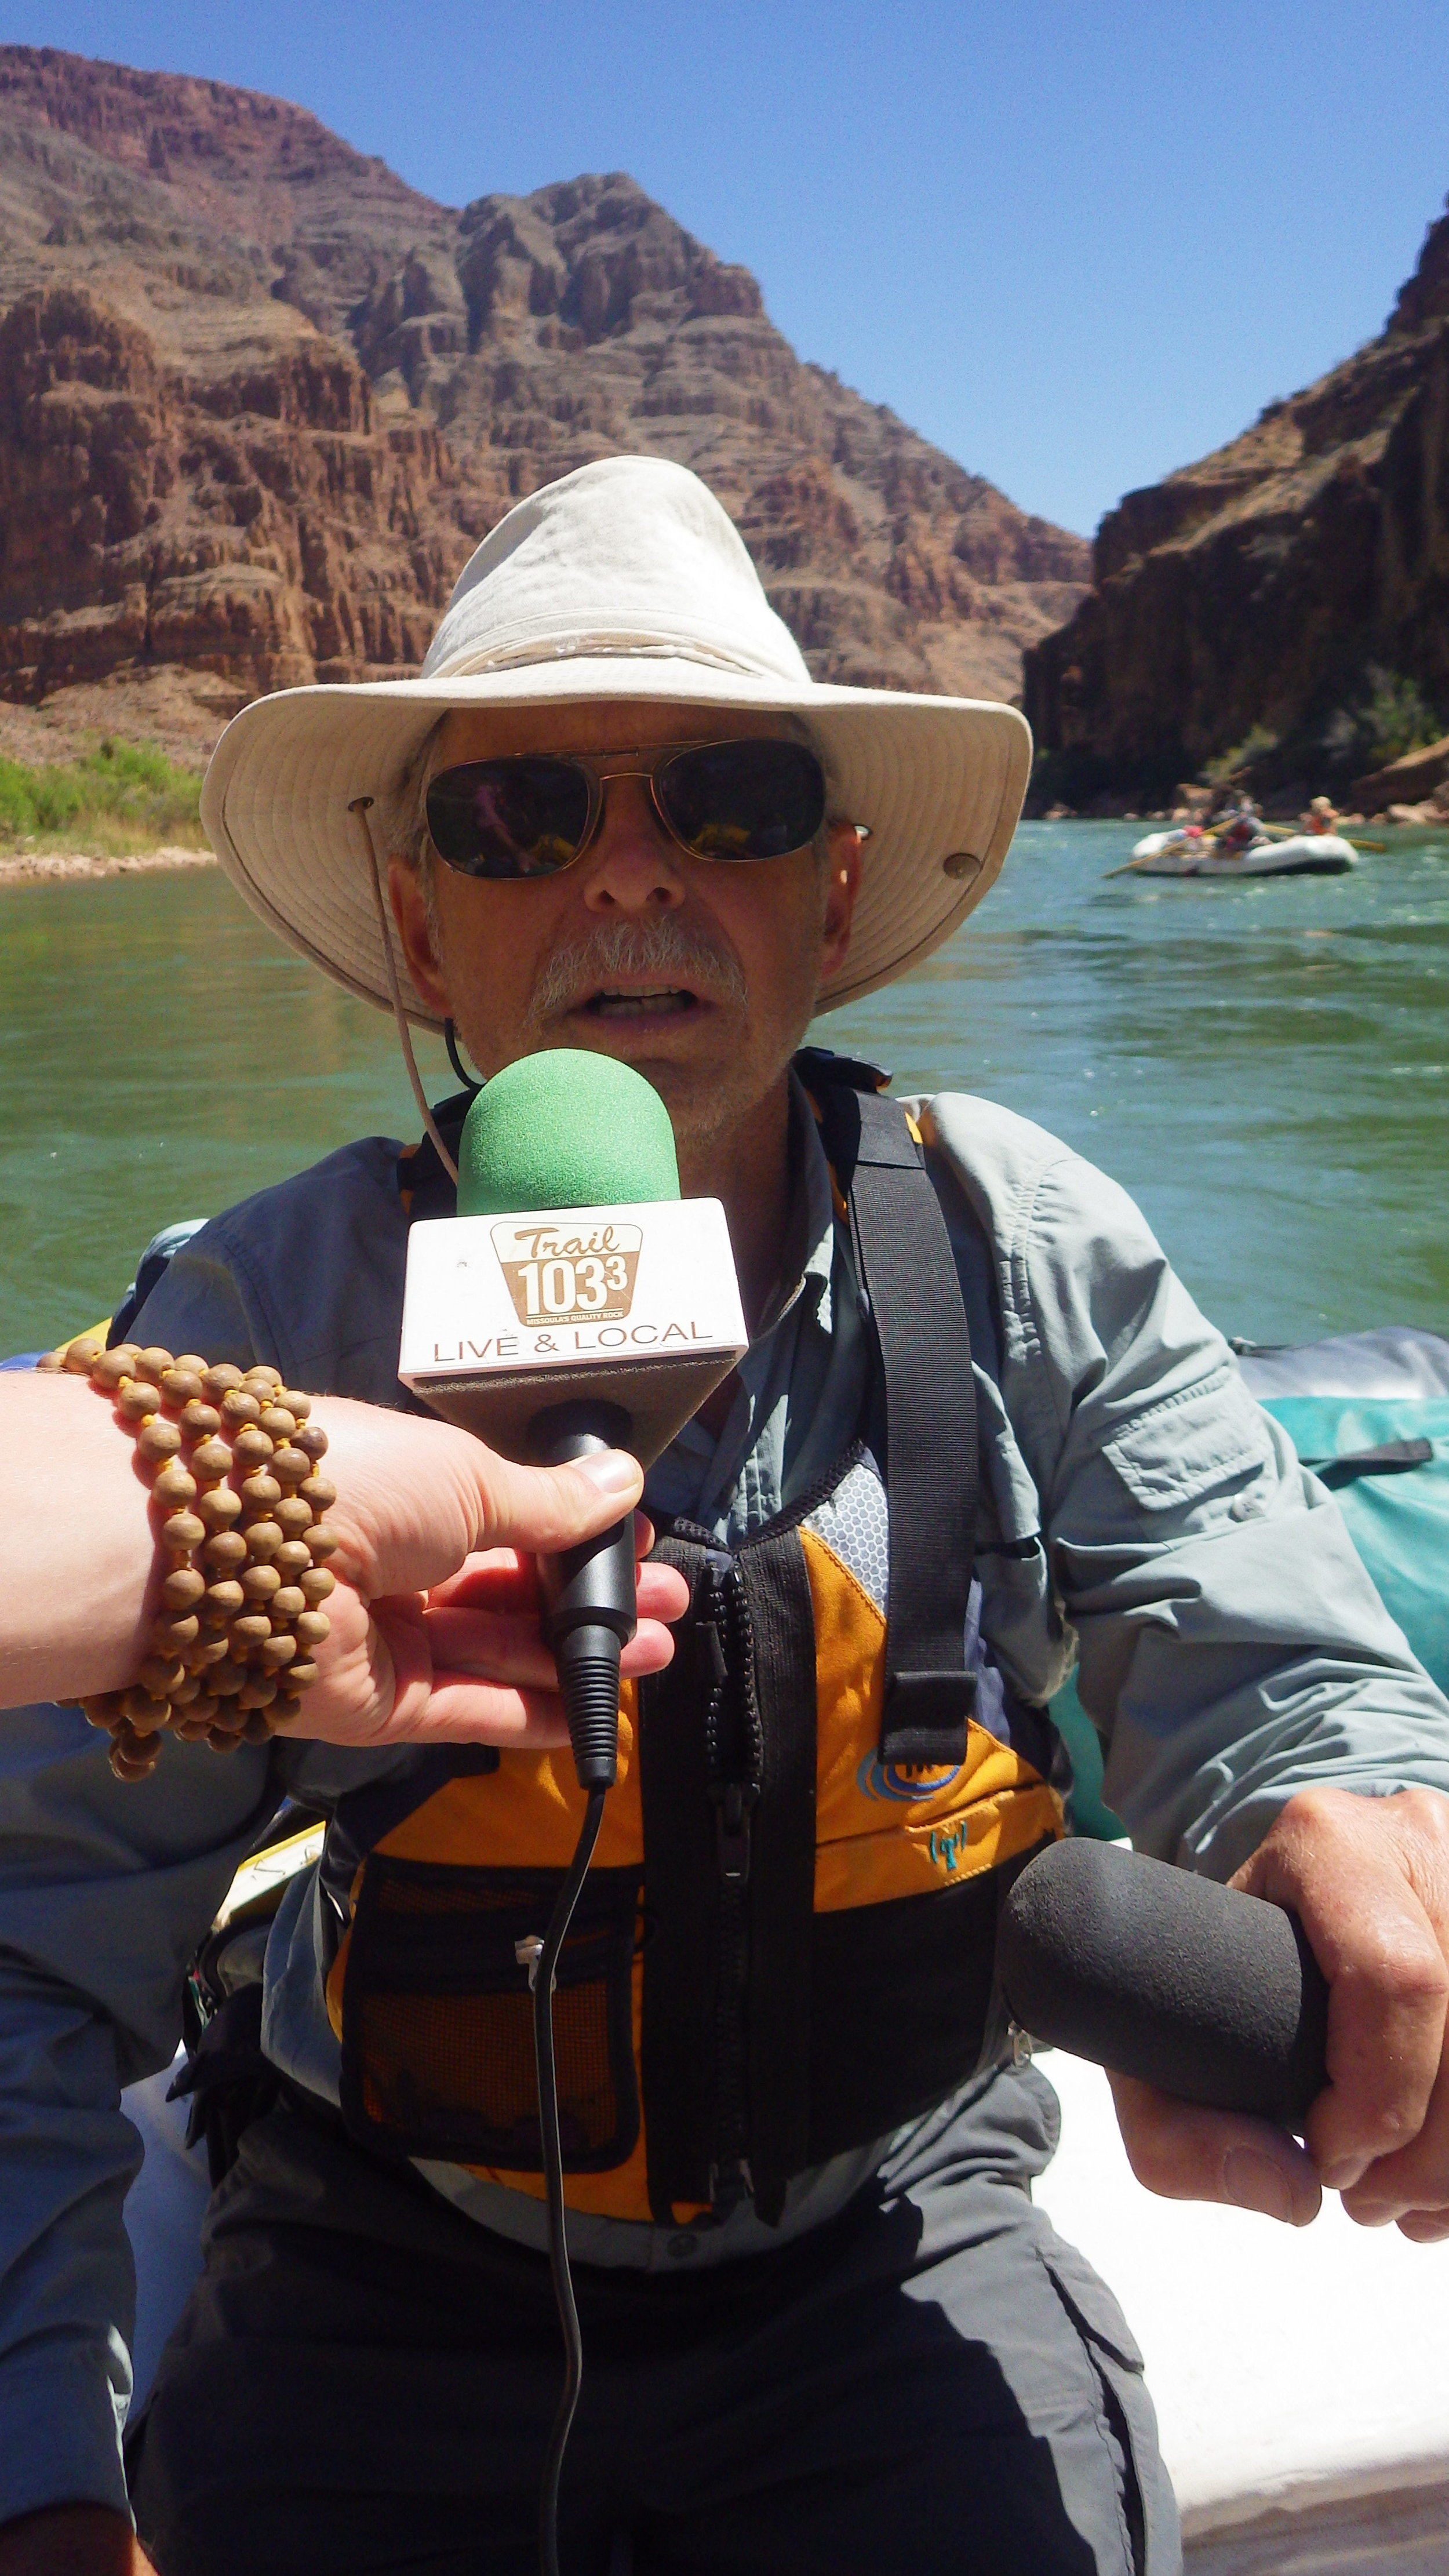 Interviewing with Dr. Larry Stevens about Biodiversity in The Grand Canyon pre & post Glen Canyon Dam. History of the proposed & implemented Dam sites in The Grand Canyon...plus an inside look at the anatomy of Glen Canyon Dan in  cluding its faults.